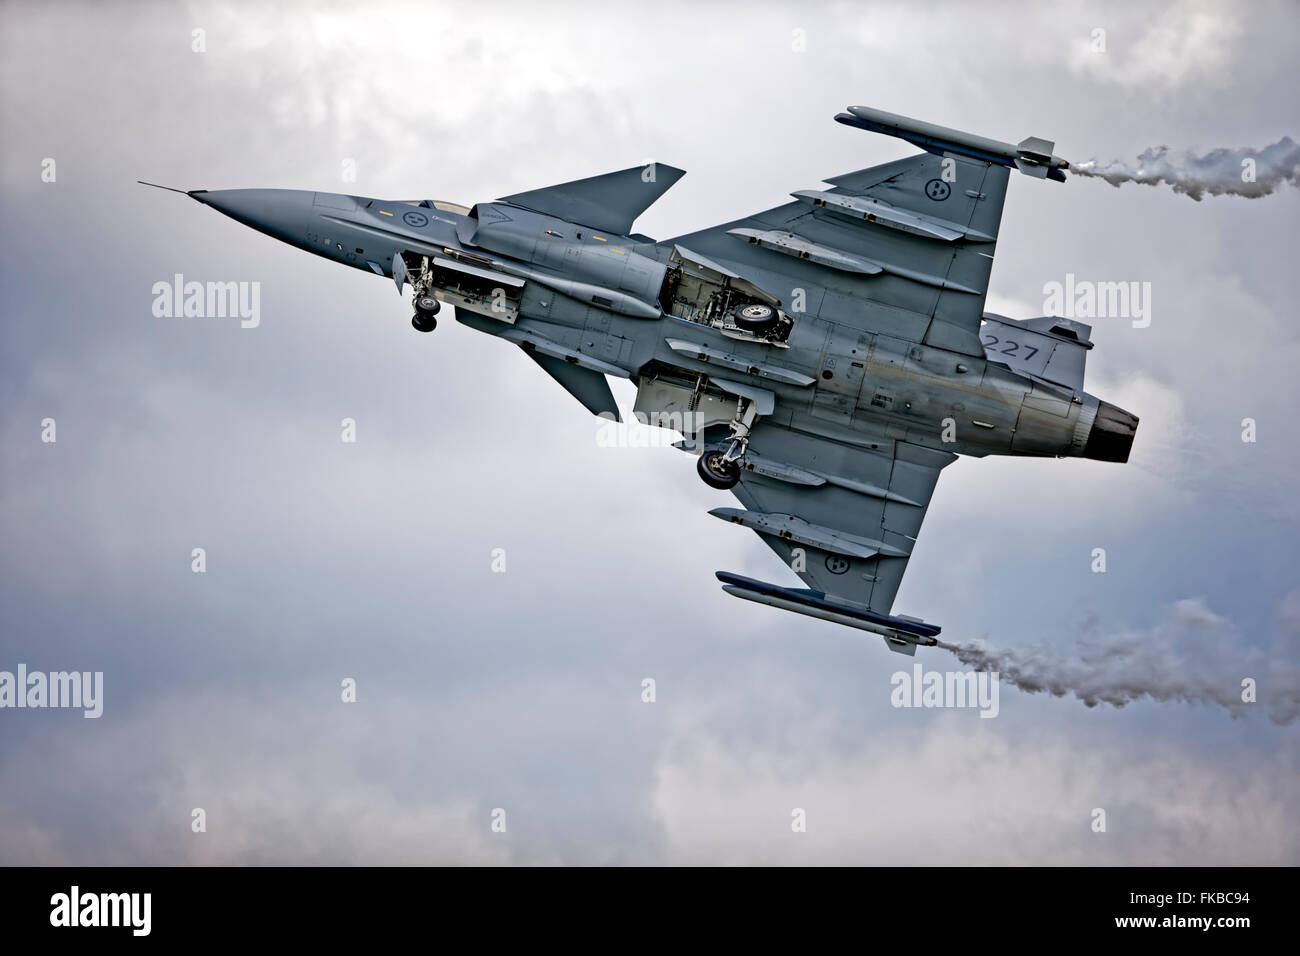 A Saab JAS 39C Gripen F 7, Swedish Air Force, Satenas, 39227, '227', takes off into an overcast sky at an - Stock Image